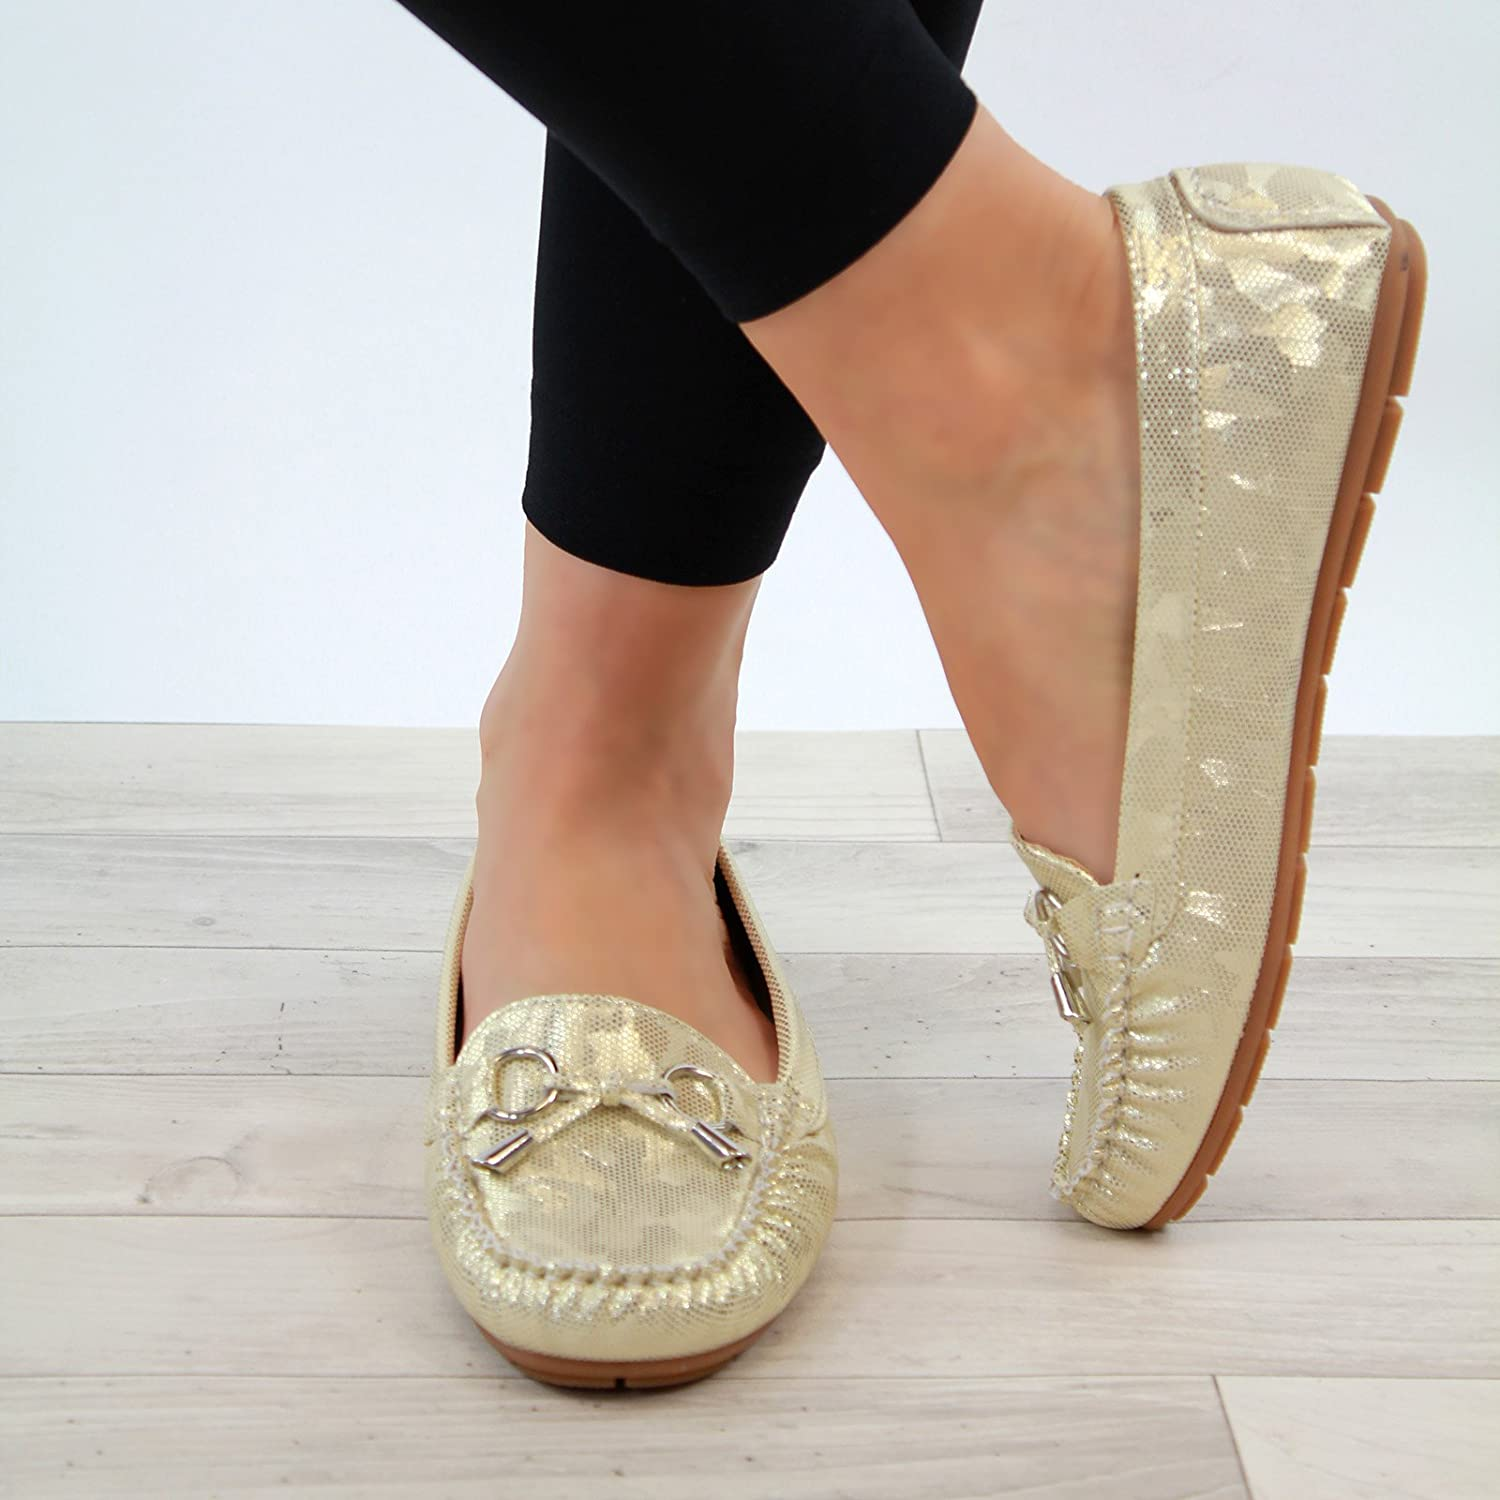 Larena Fashion New Womens Casual Loafers Flat Metallic Comfort Work Slip On Pumps  Shoes: Amazon.co.uk: Shoes & Bags